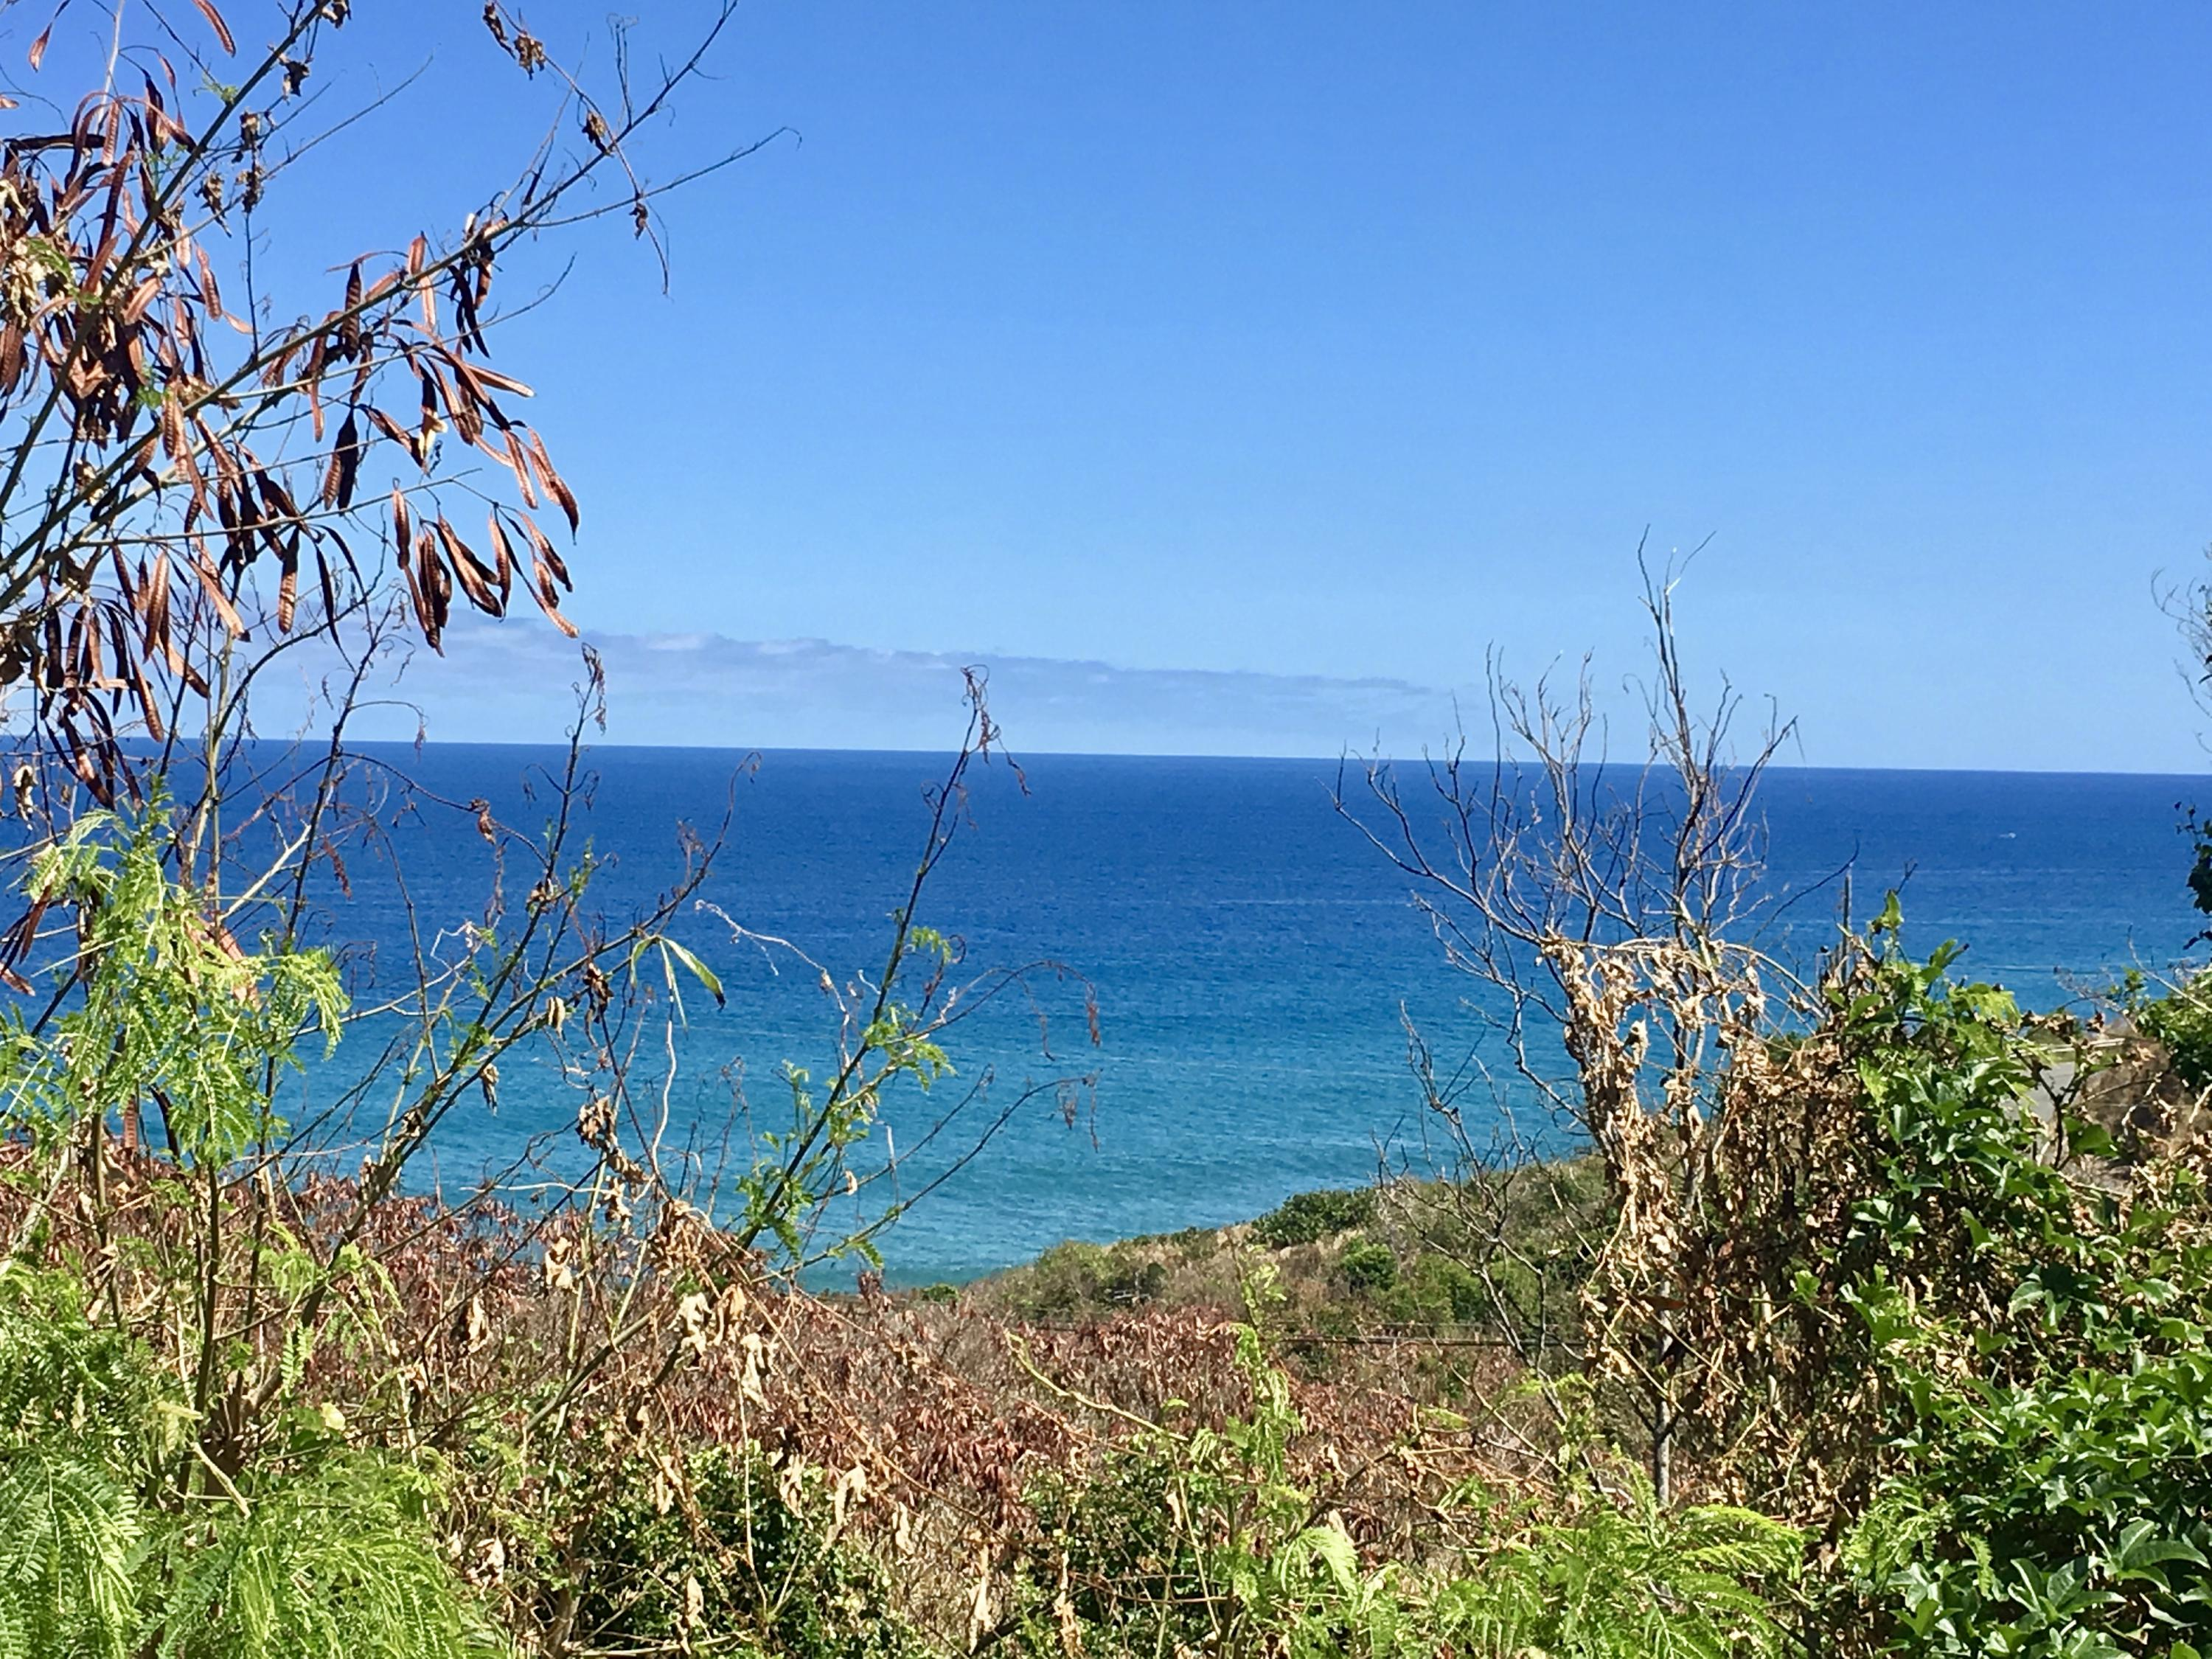 Land for Sale at 129 Concordia NB 129 Concordia NB St Croix, Virgin Islands 00820 United States Virgin Islands